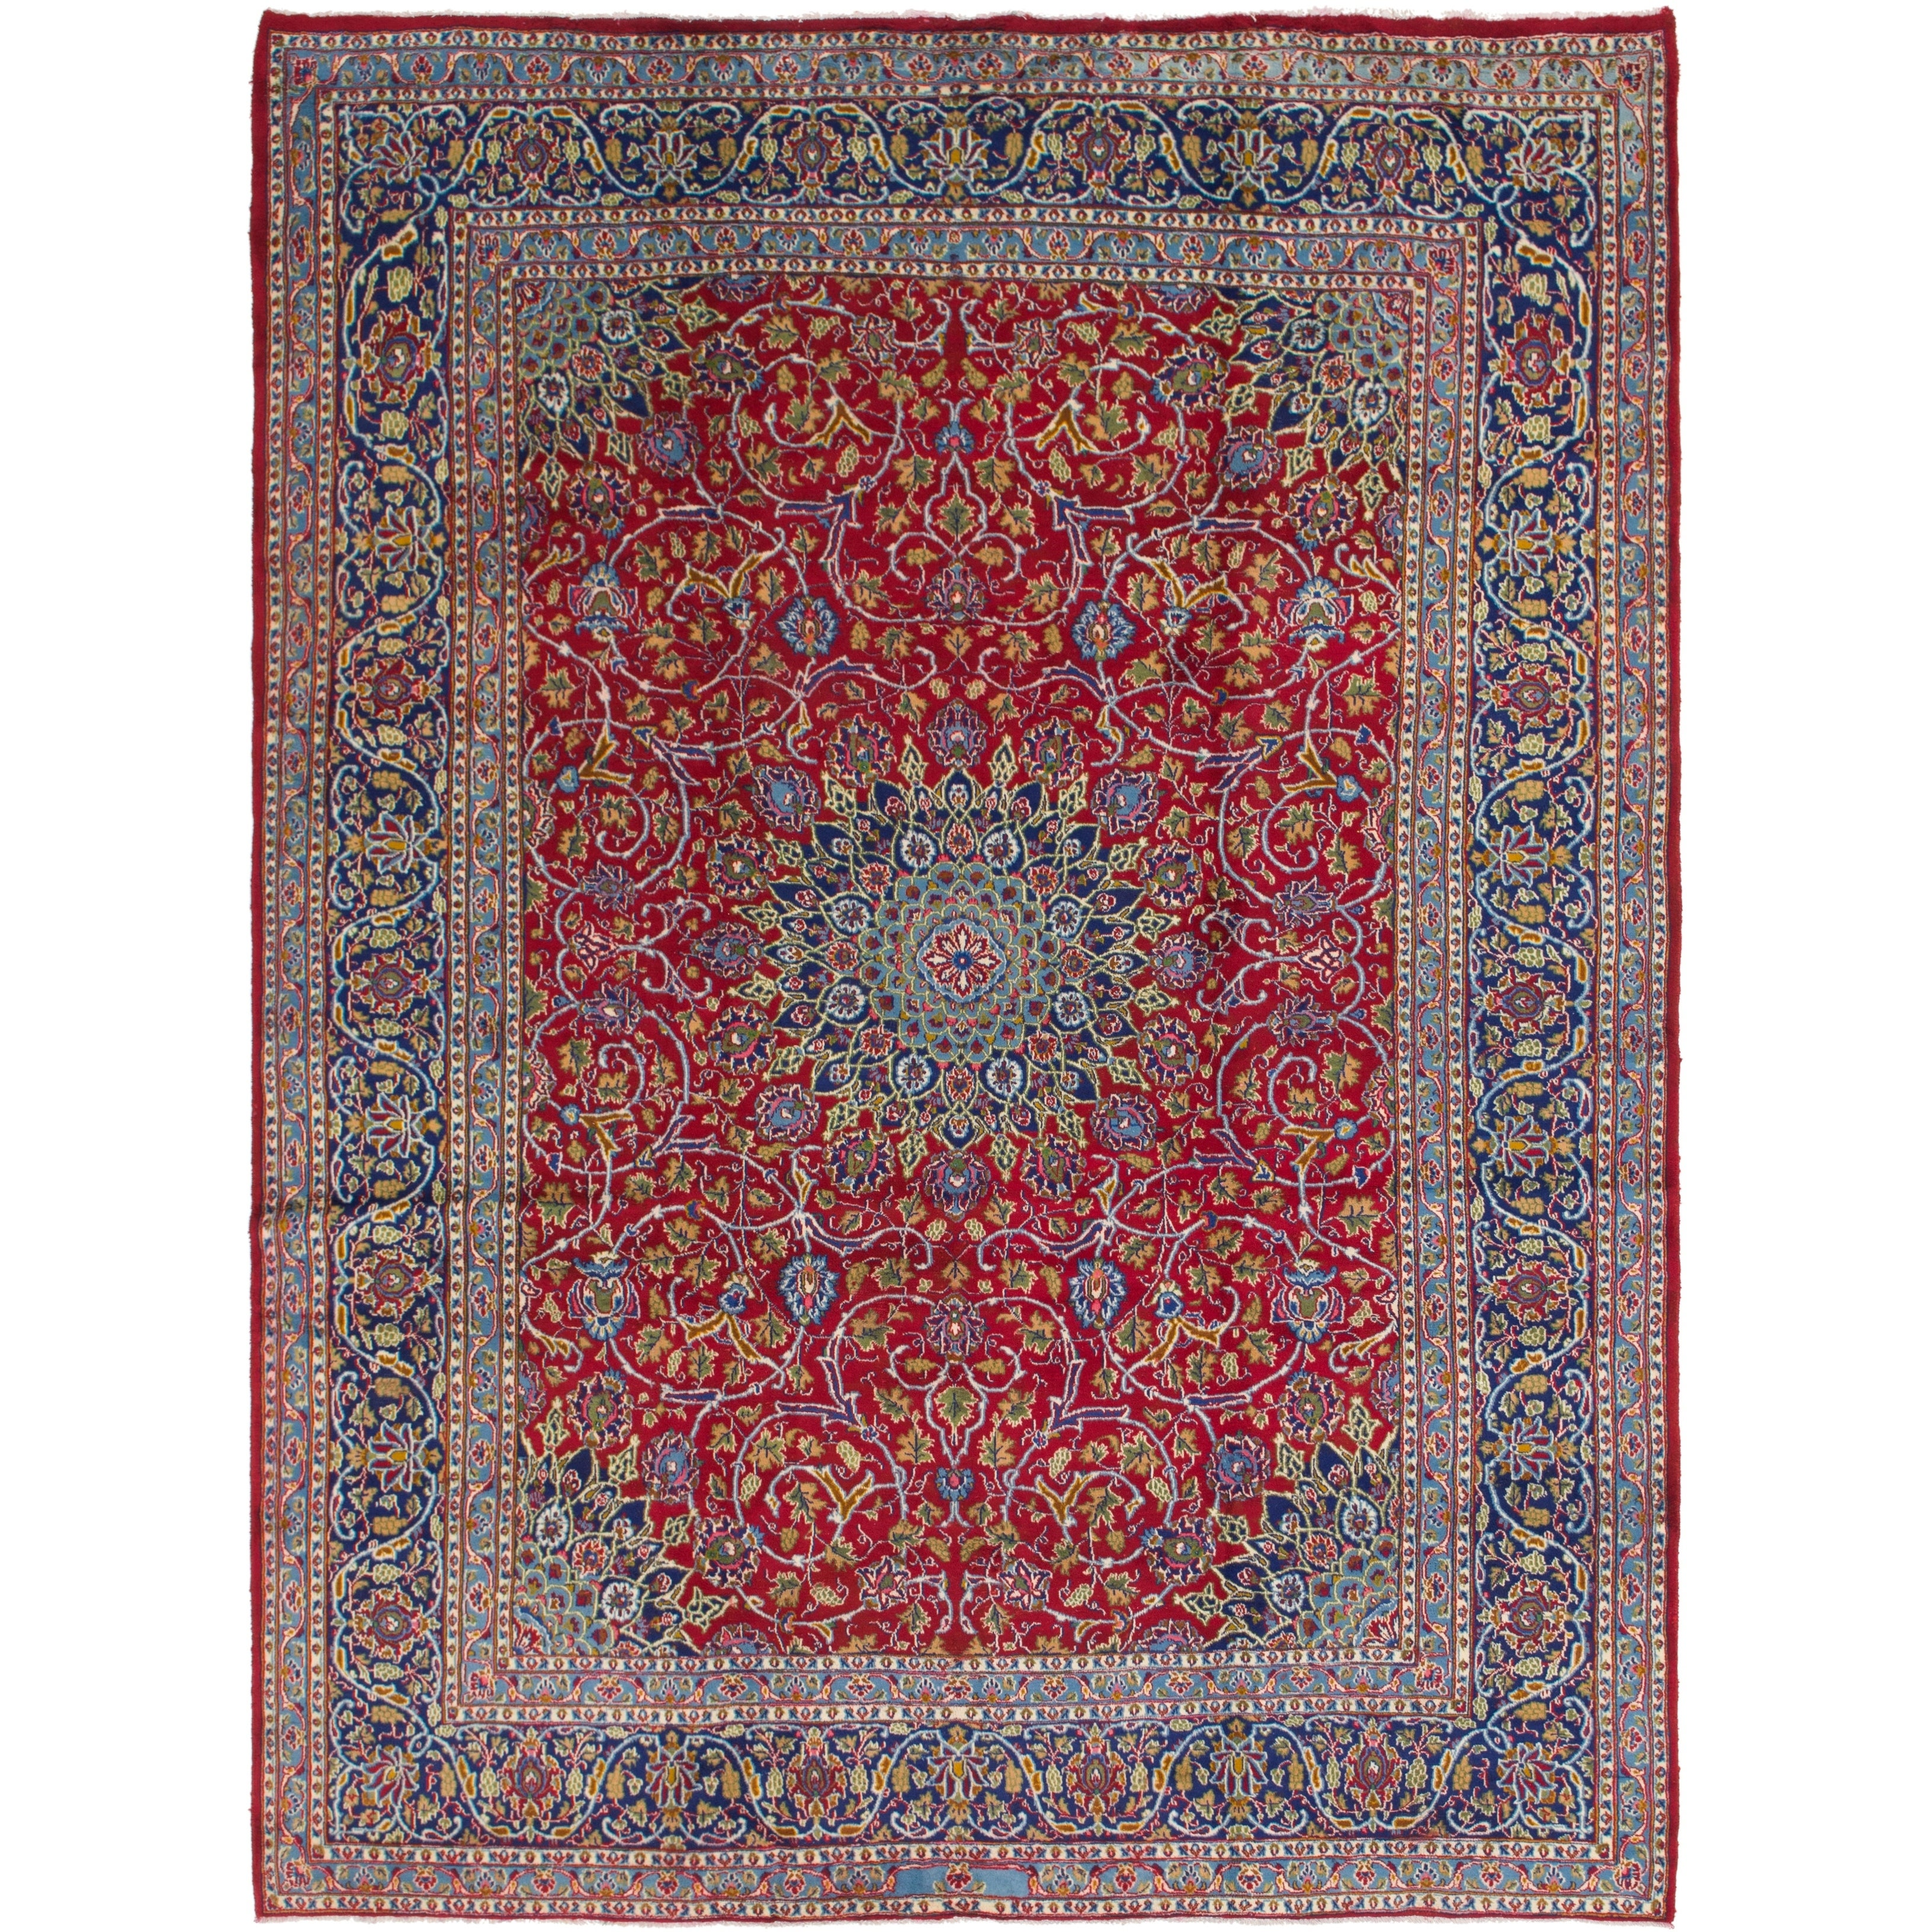 Hand Knotted Kashmar Semi Antique Wool Area Rug - 9 6 x 12 10 (Red - 9 6 x 12 10)